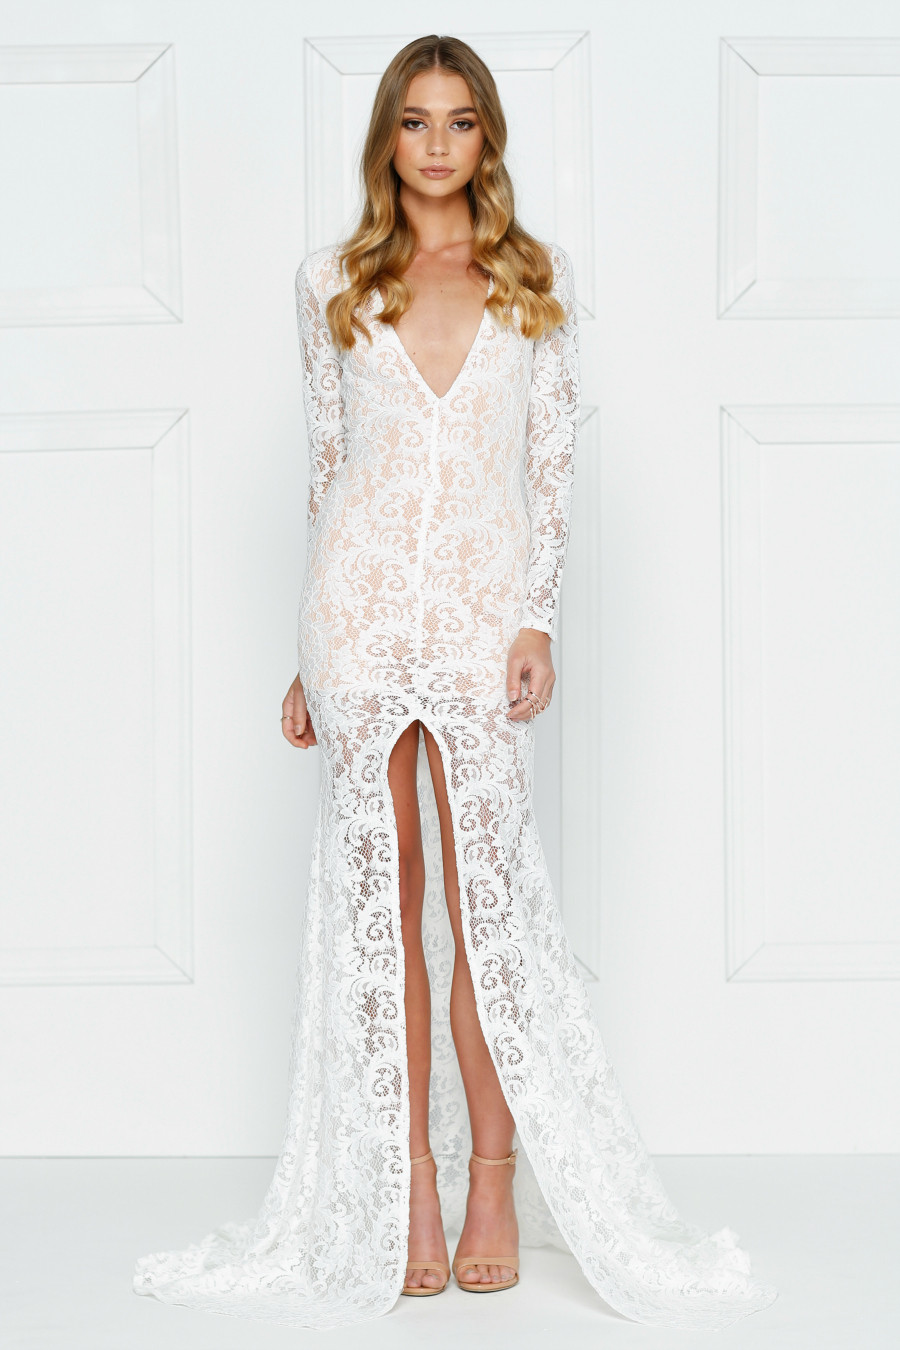 JASMYNE White Lace Mermaid Formal Gown Dress by Alamour The Label ...